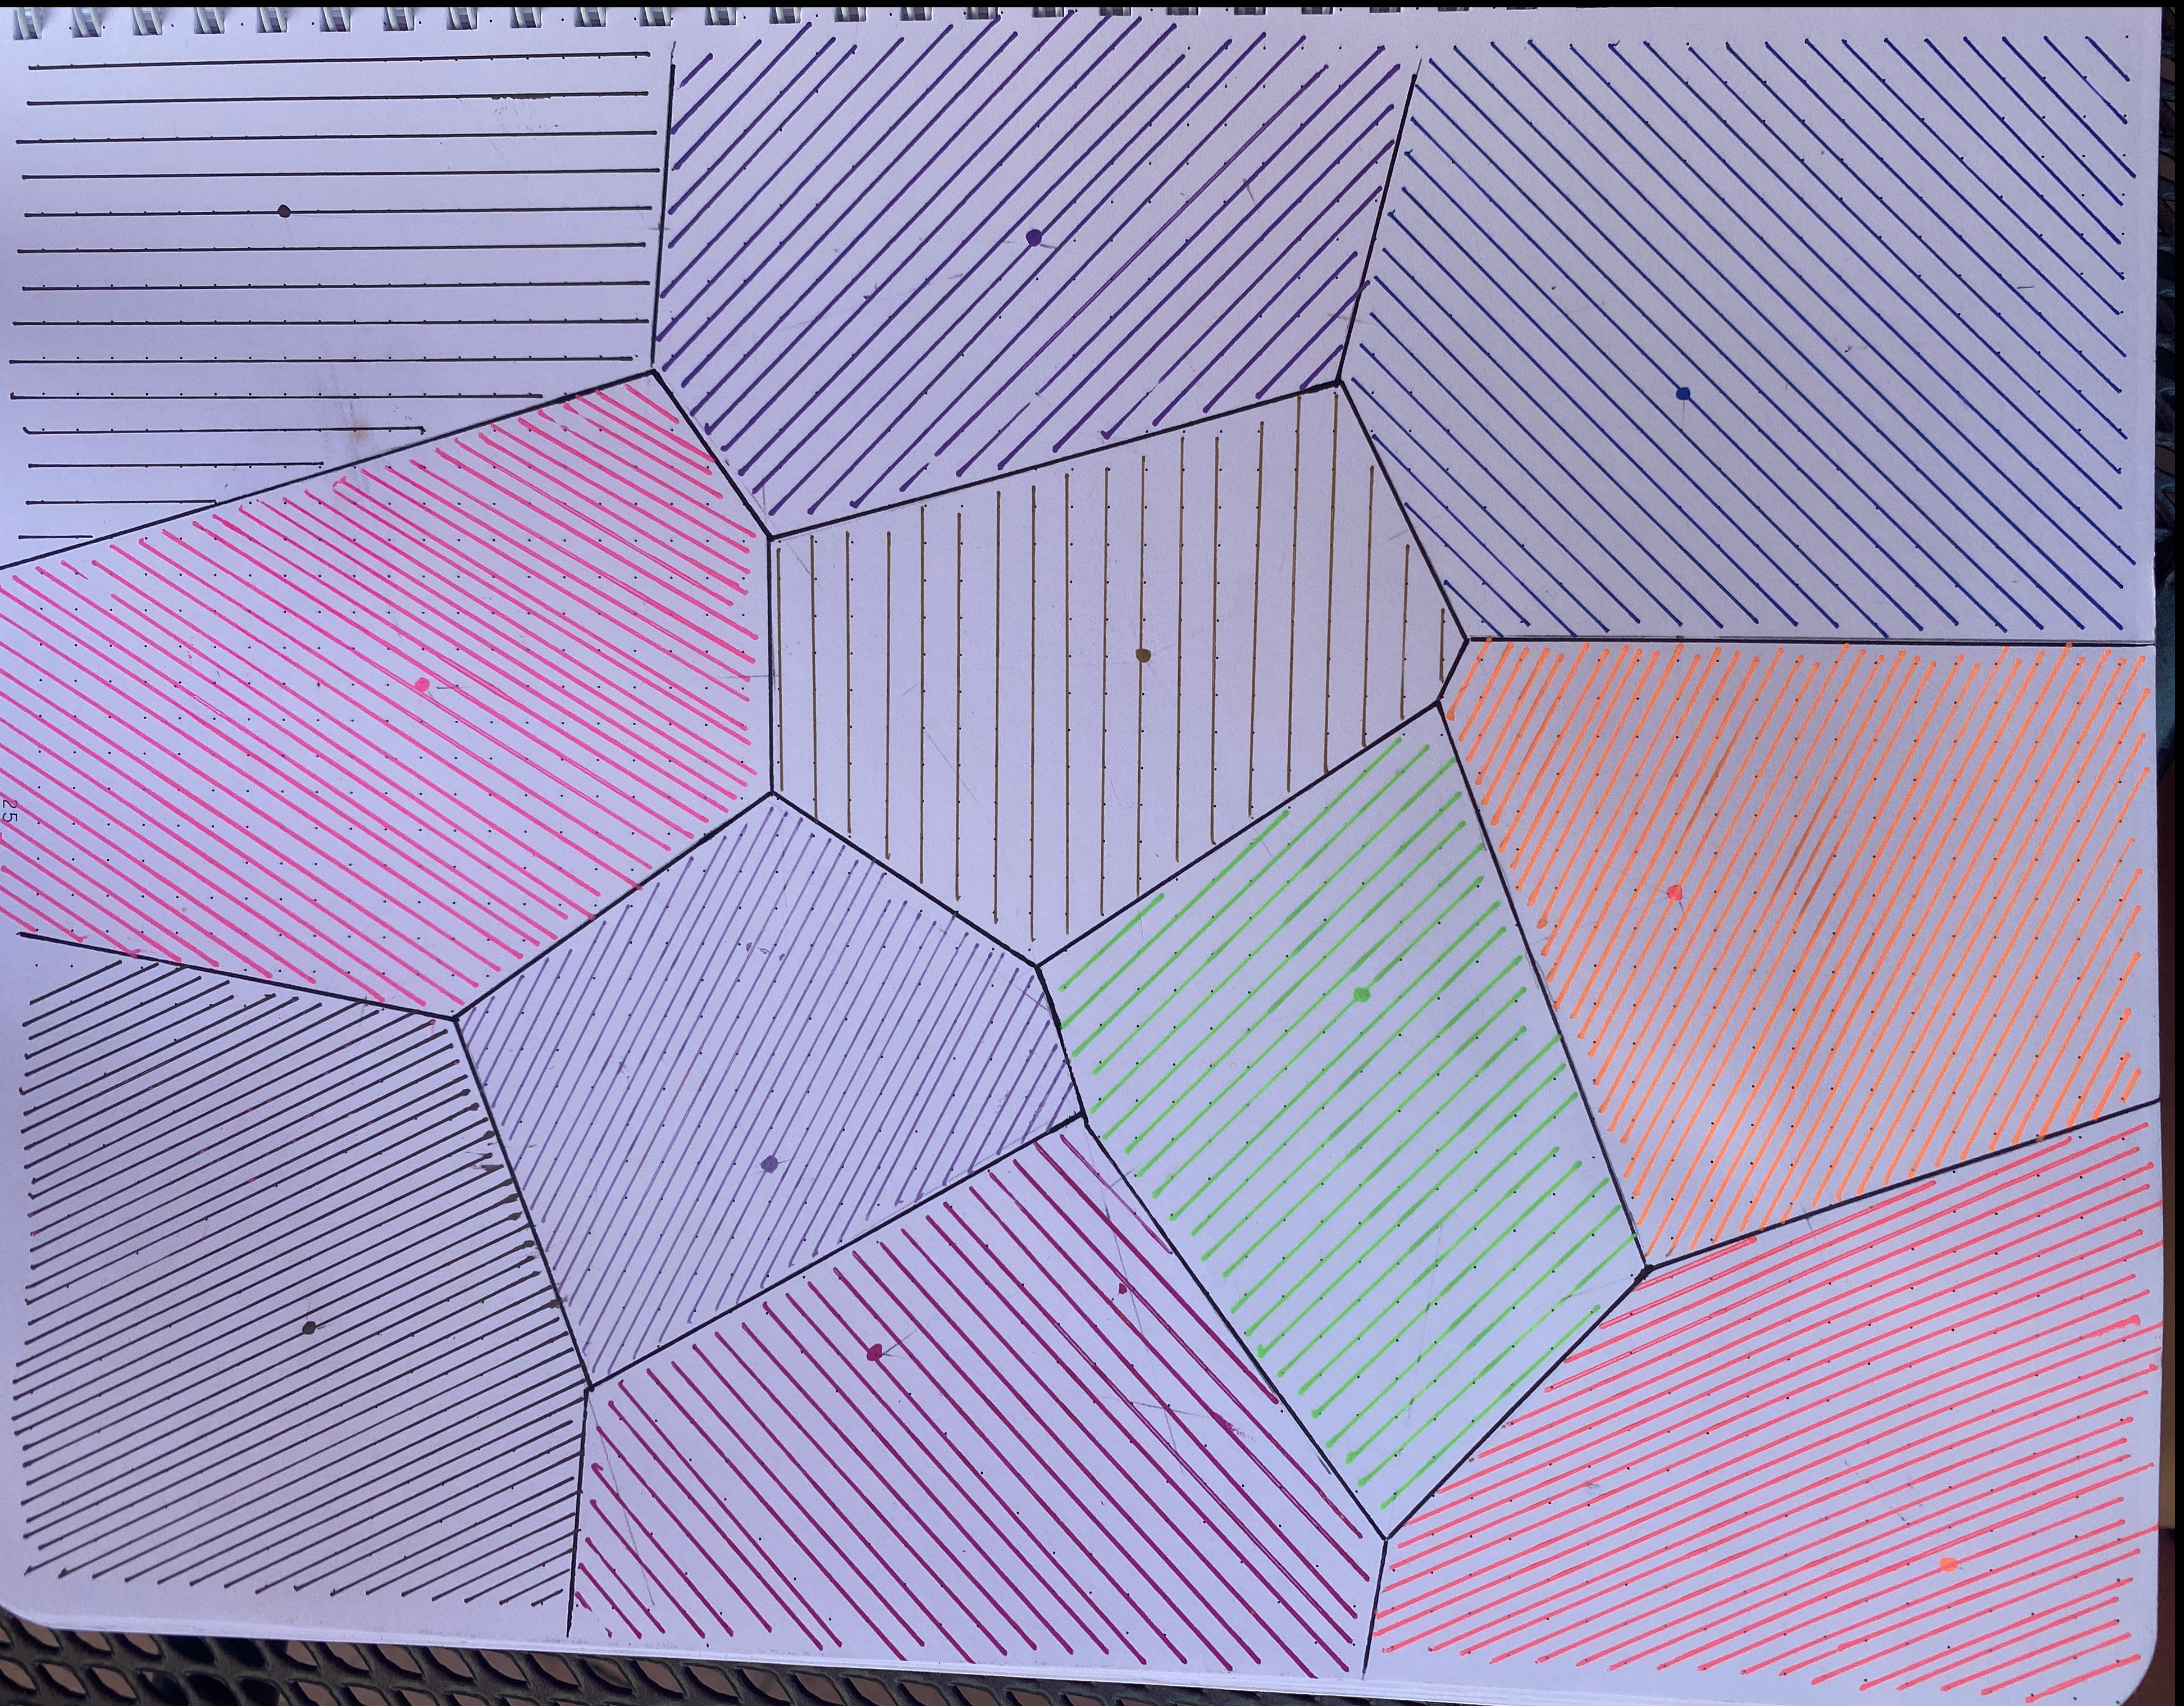 Voronoi Diagram Sketched in Notebook